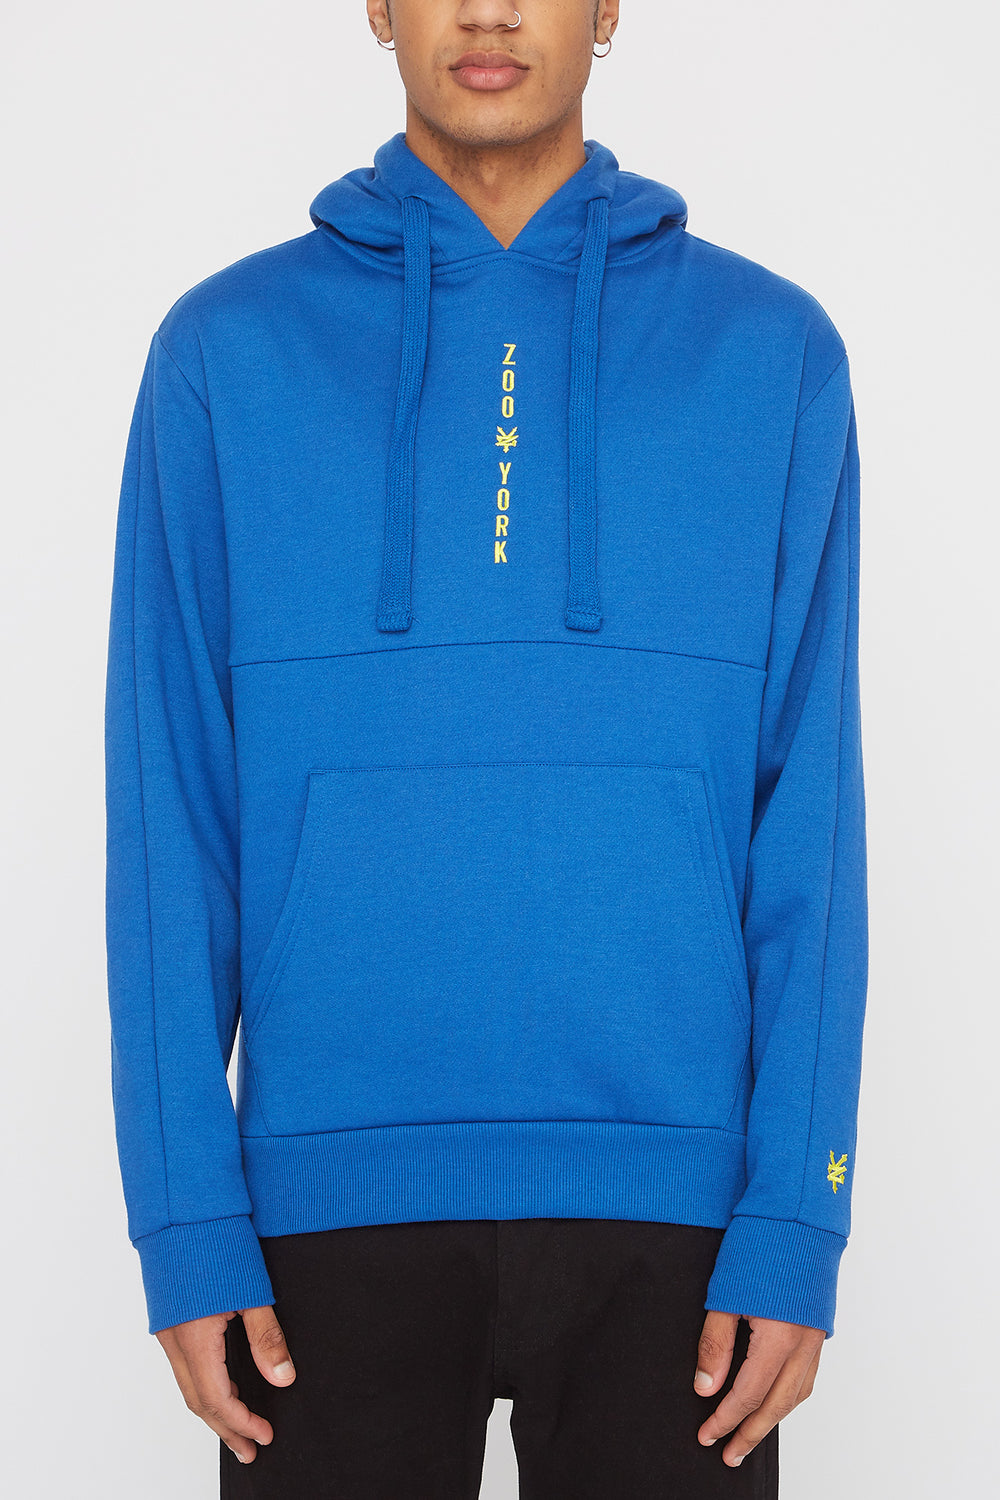 Zoo York Mens Embroidered Logo Hoodie Blue